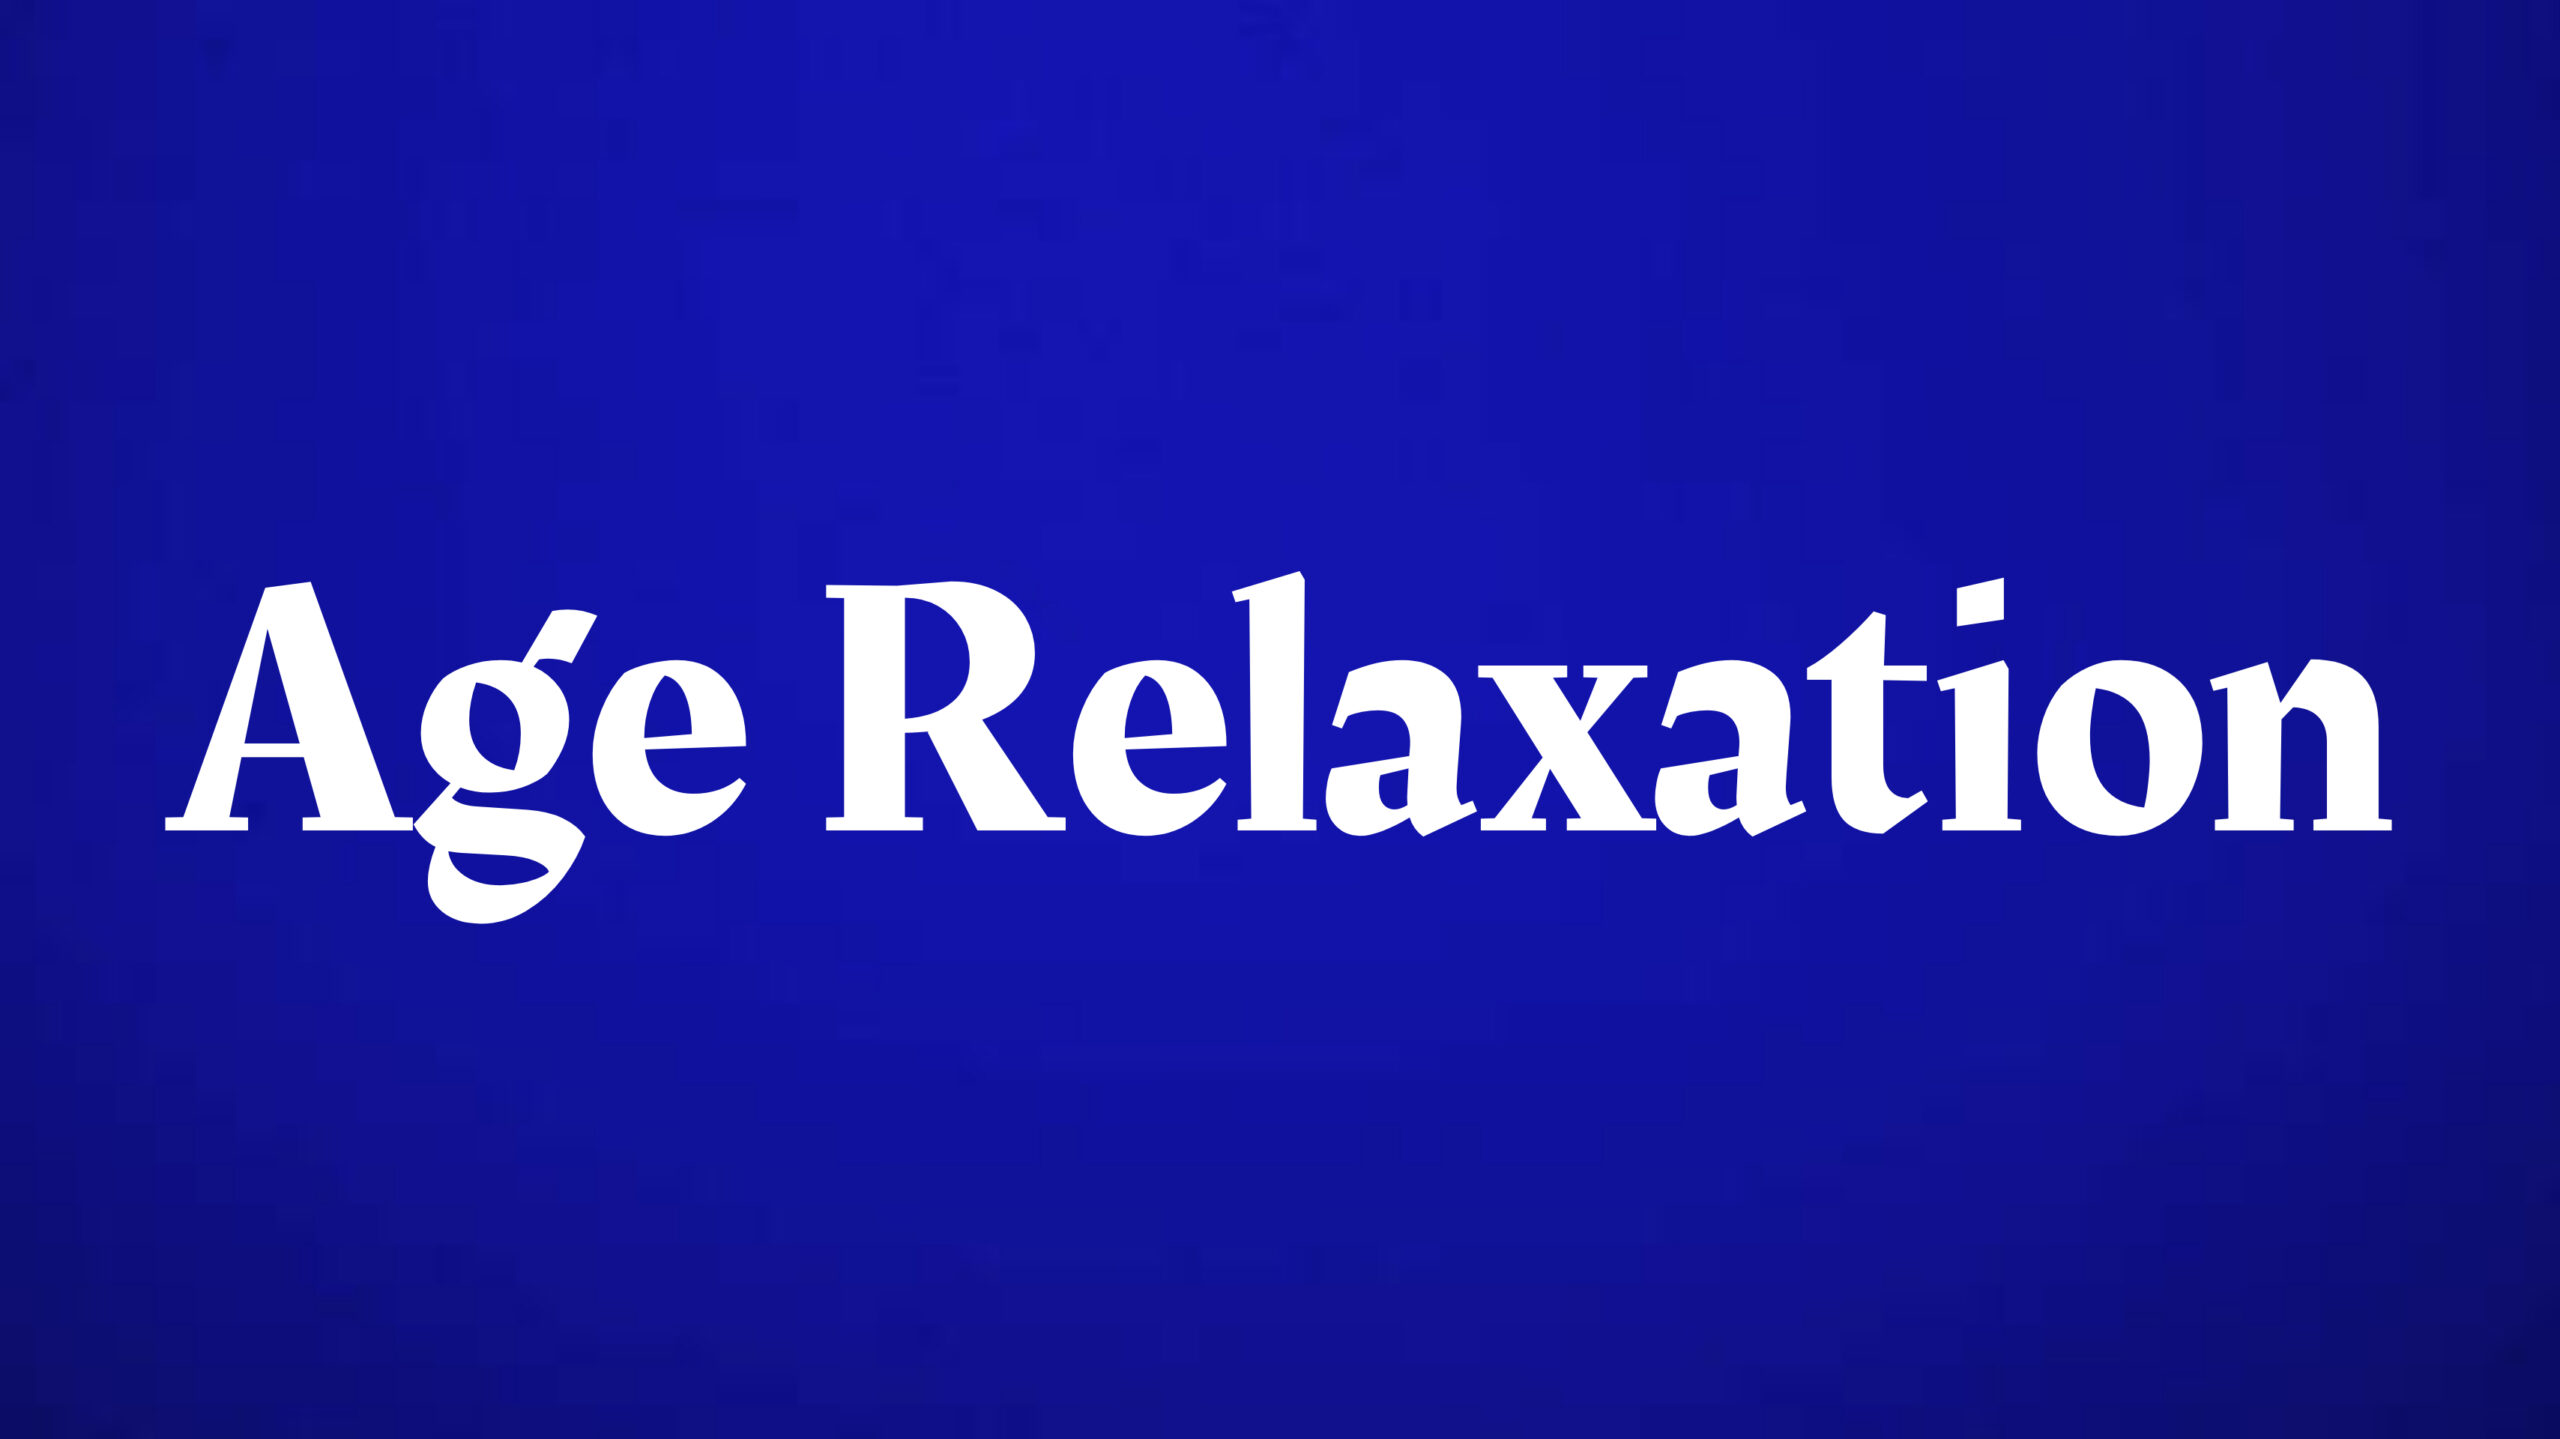 Age relaxation for civil service examination